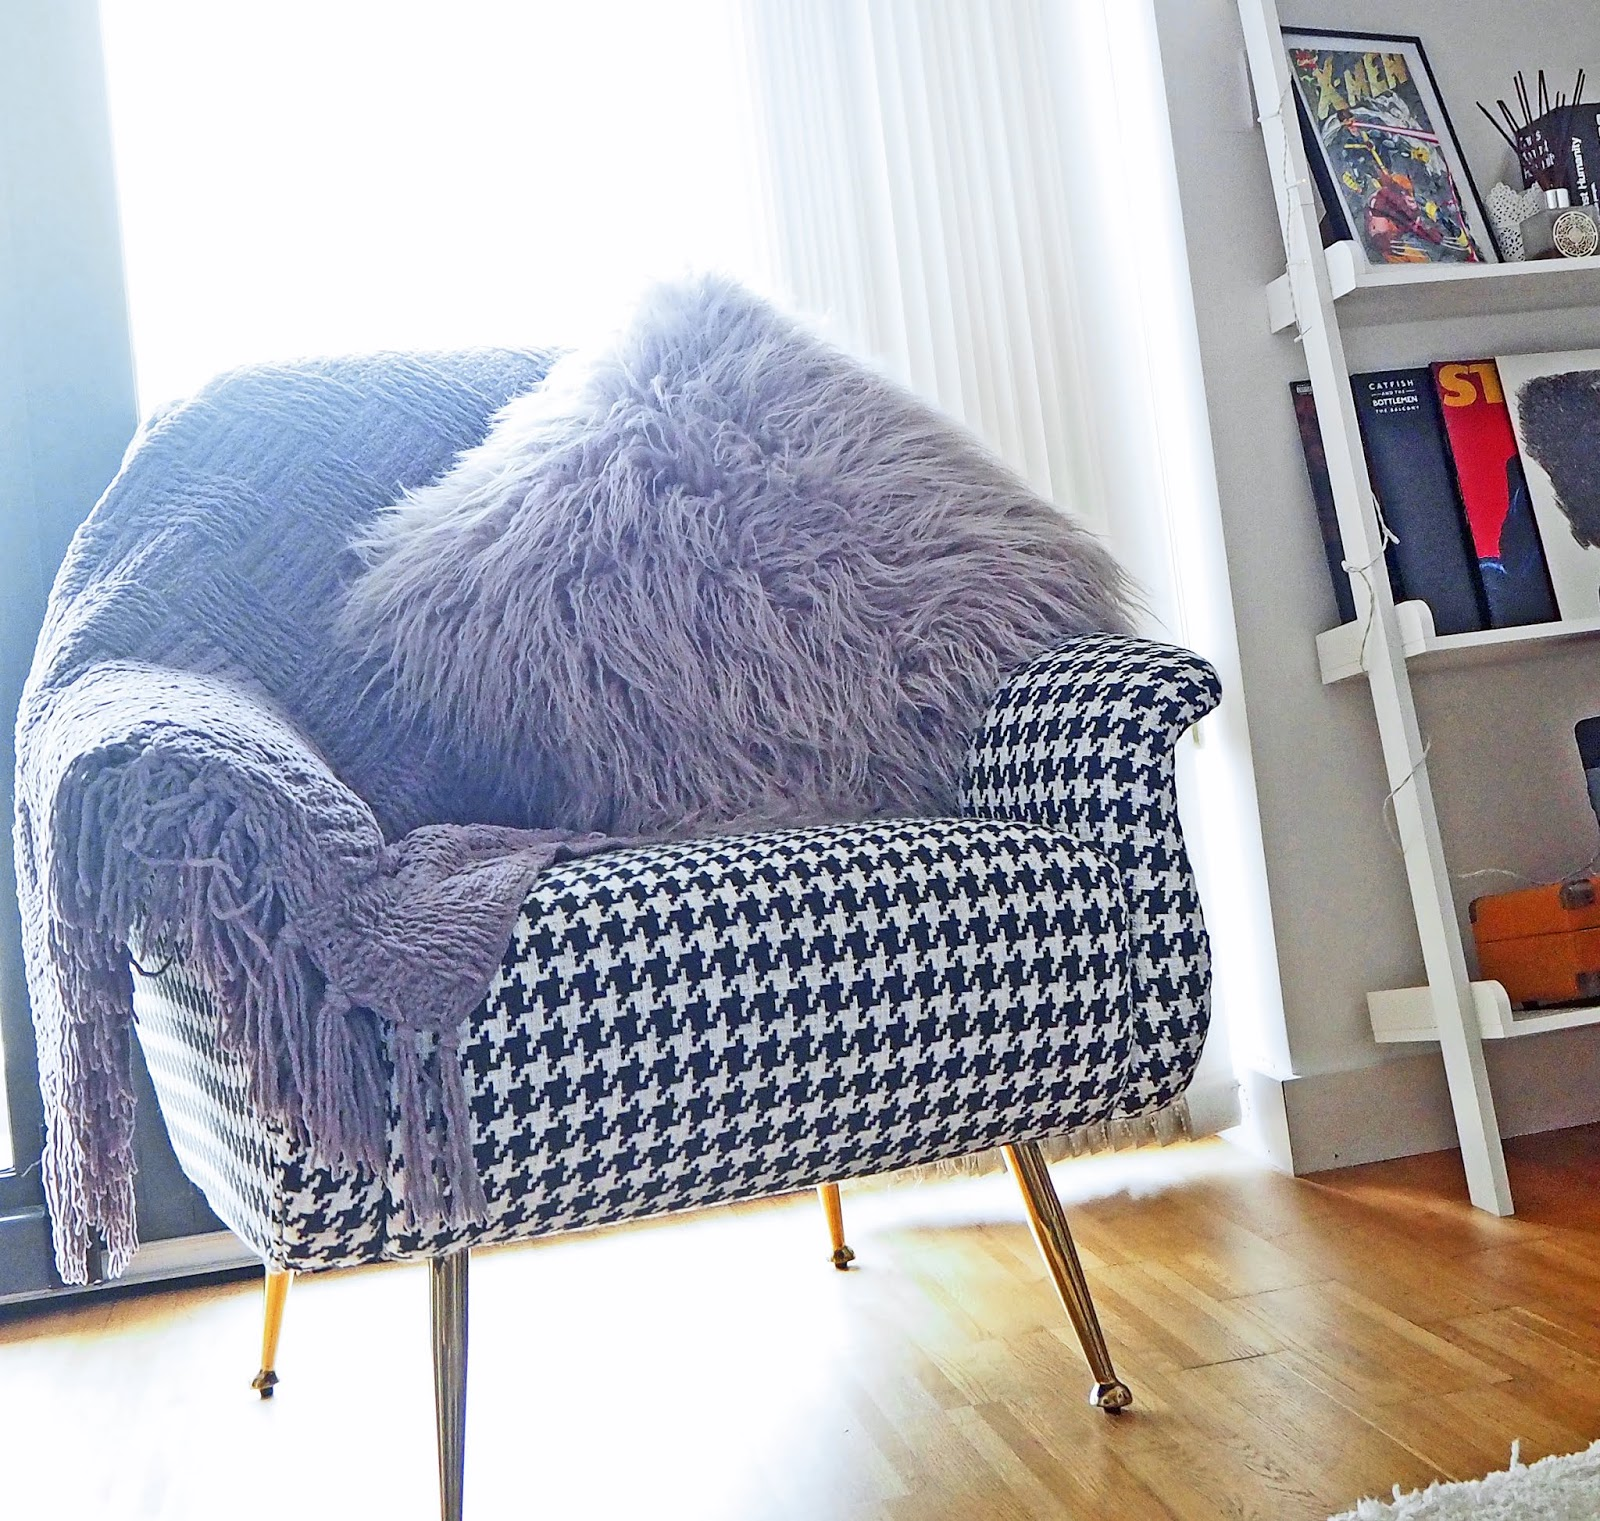 Houndstooth chair